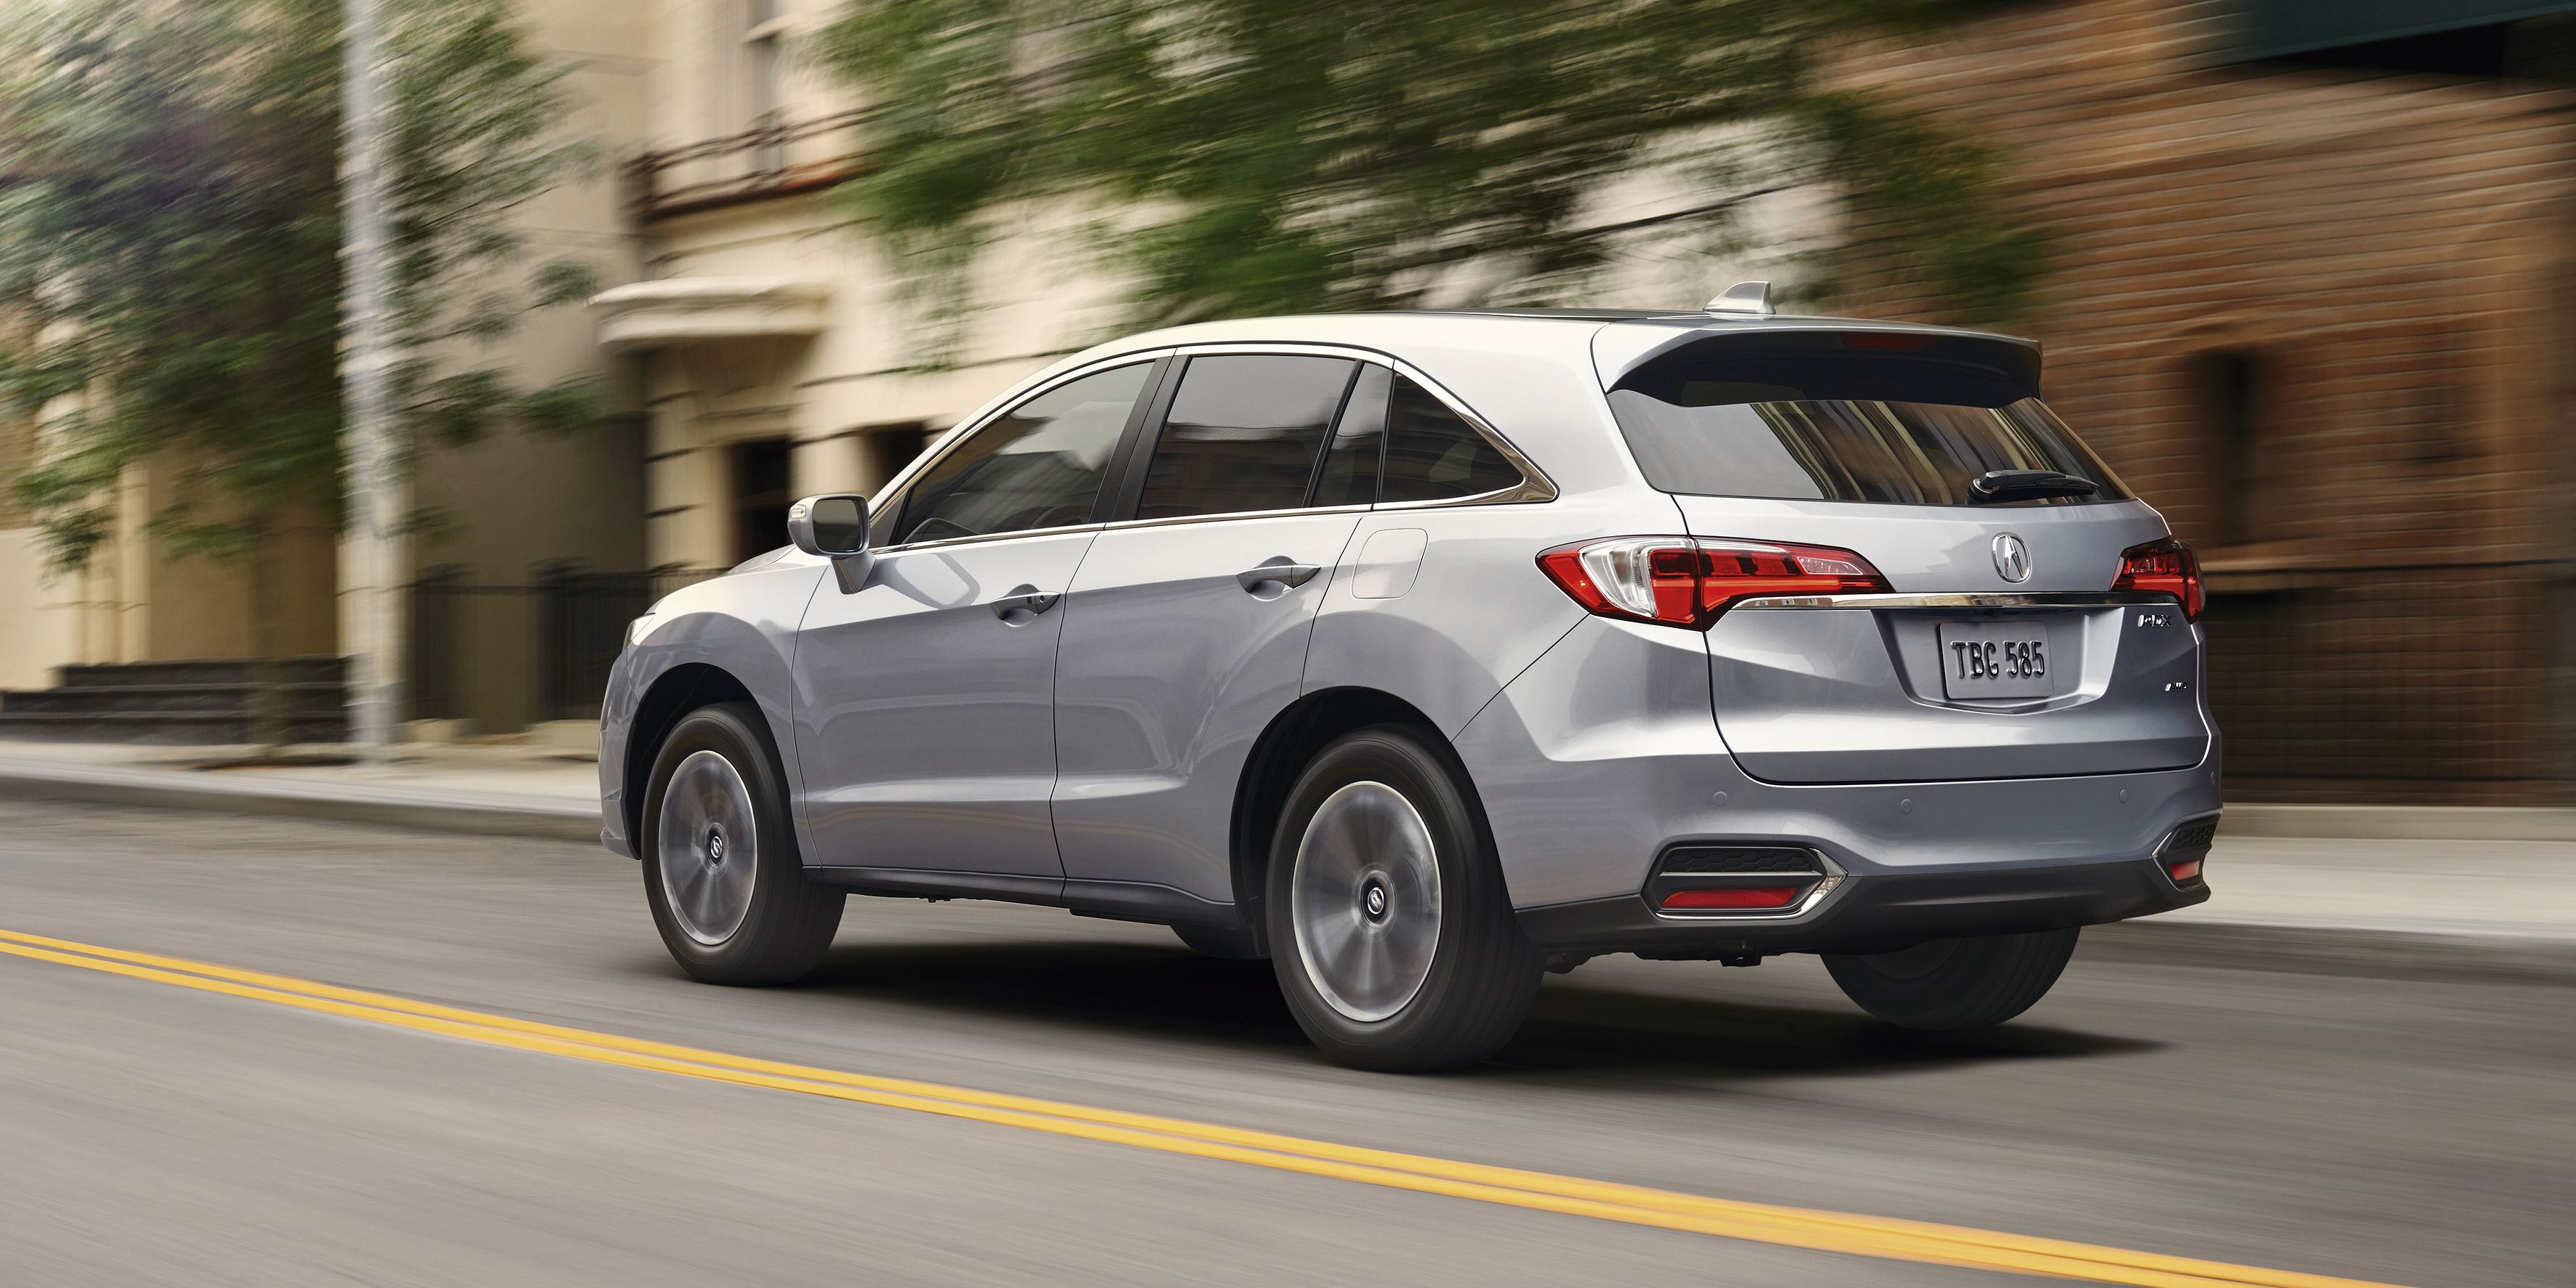 Shot Description Rear 3/4 Rig , Project Name 2BS shoot, Job Number ACN1-RDX-14-08428_2BS, Model Year 2016, Model RDX, Trim Level Advance, Exterior Color Slate Silver Metallic, Interior Color Greystone, Date 1/26/15, Photographer Brian Konoske, Location / StudiLong Beach, &#xA&#x3B; Art Usage Unlimited , &#xA&#x3B; Art Usage Expiration N/A, &#xA&#x3B; Shot # U_RDX16_ 002 , &#xA&#x3B; Agency Name Mullen LA , &#xA&#x3B; Art Producer Kate Shoults, &#xA&#x3B; Production John Noonan - Gravy, Productions&#xA&#x3B; Creative: John Wilson Baker,